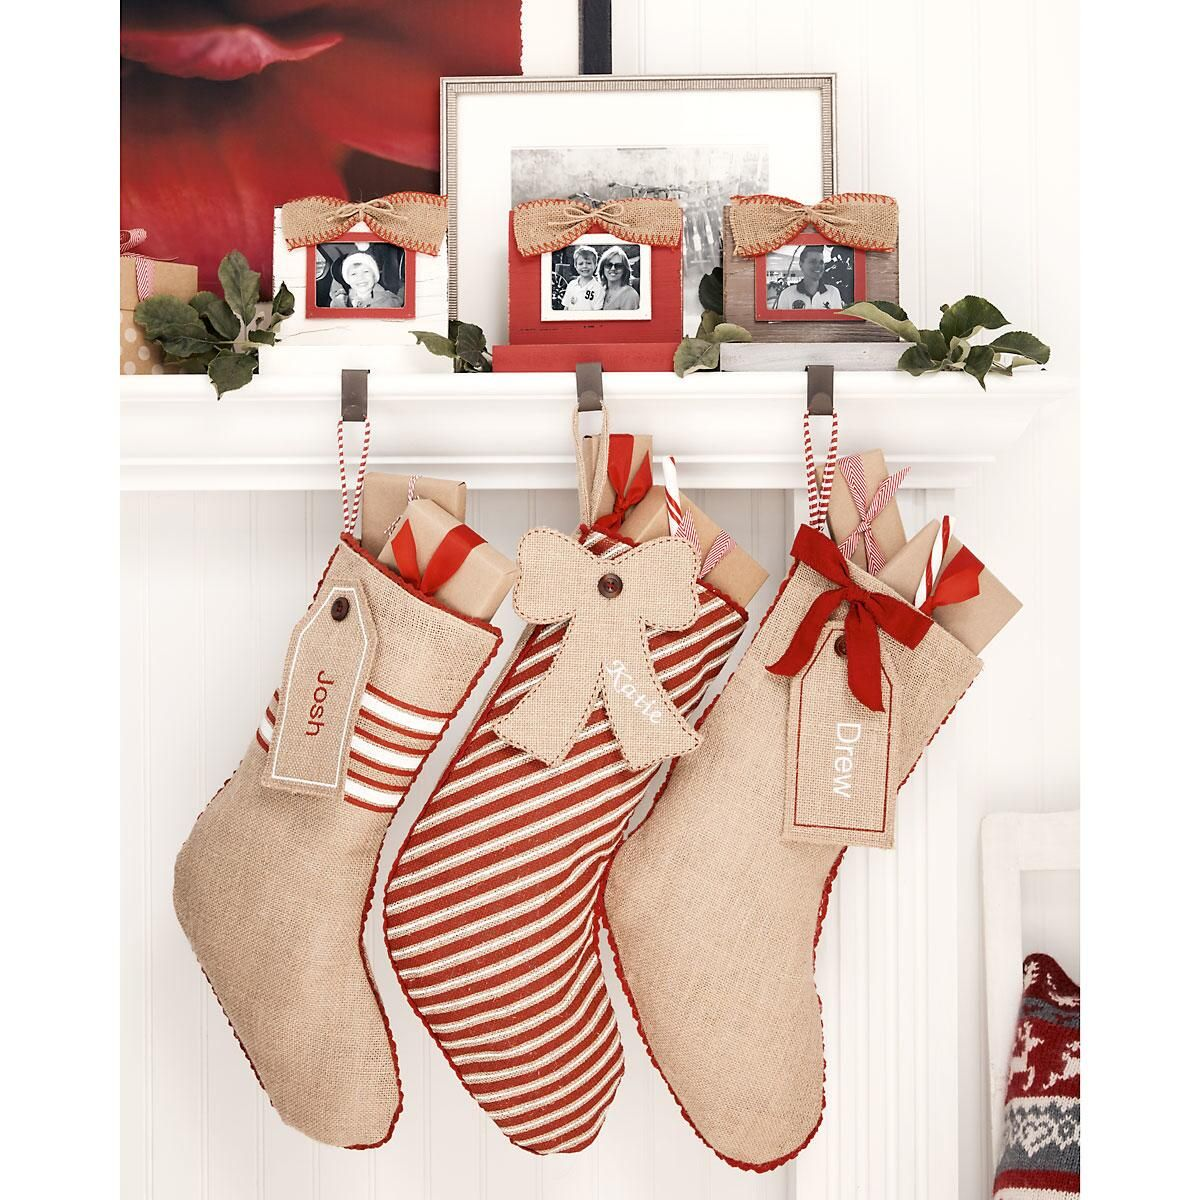 Attractive Burlap Stockings Part - 8: Burlap Personalized Christmas Stocking Banded With Gift Tag By Mud Pie